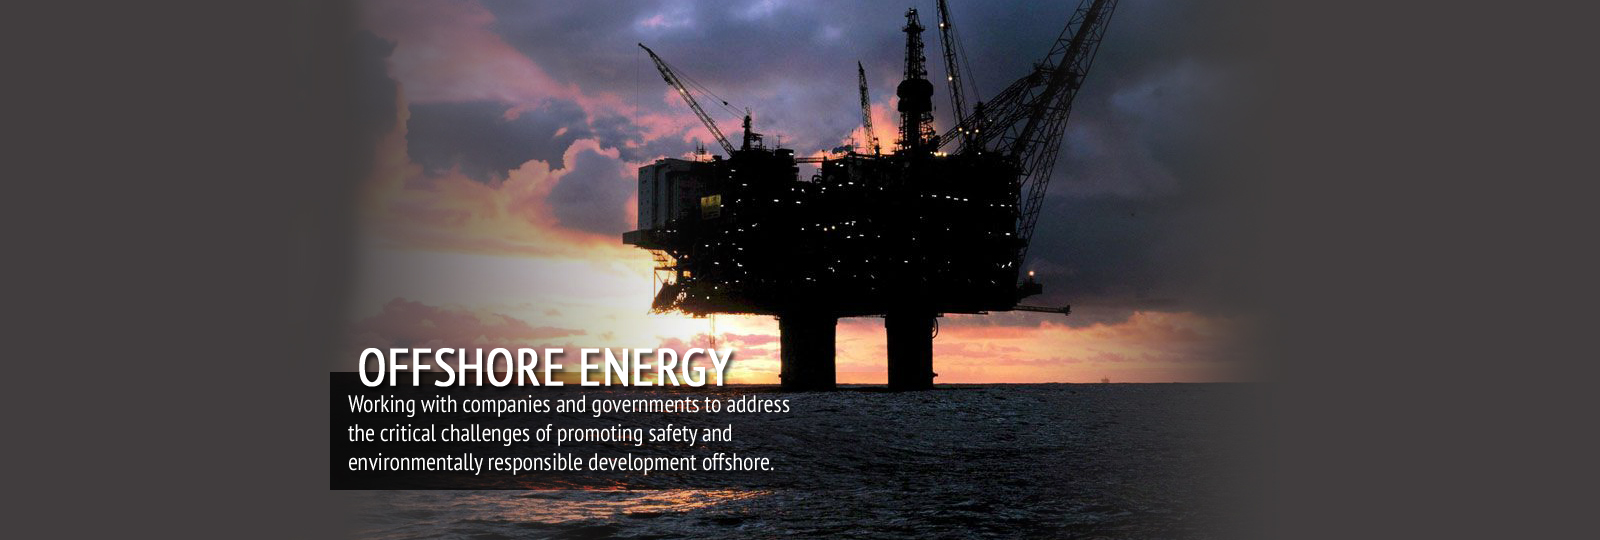 Slide 3 – Offshore Energy